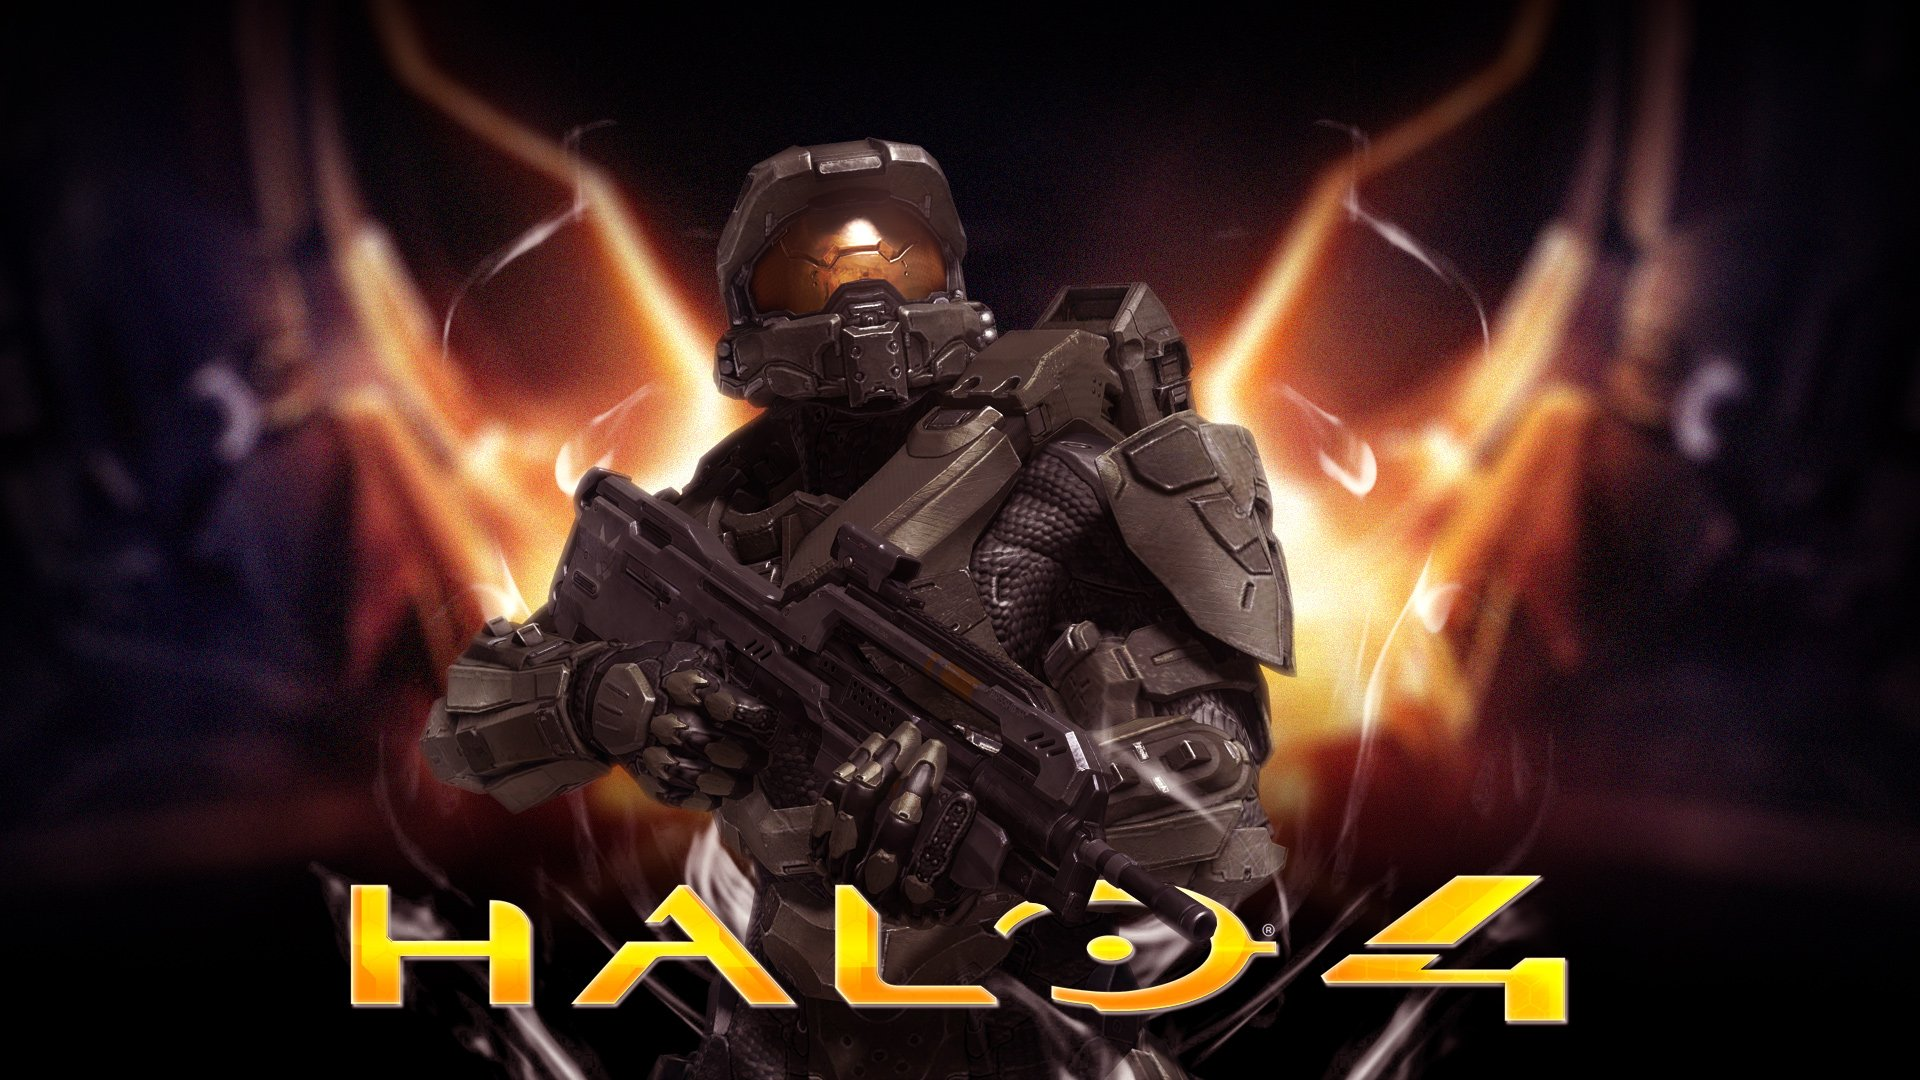 Awesome Halo Wallpapers wallpaper wallpaper hd 1920x1080